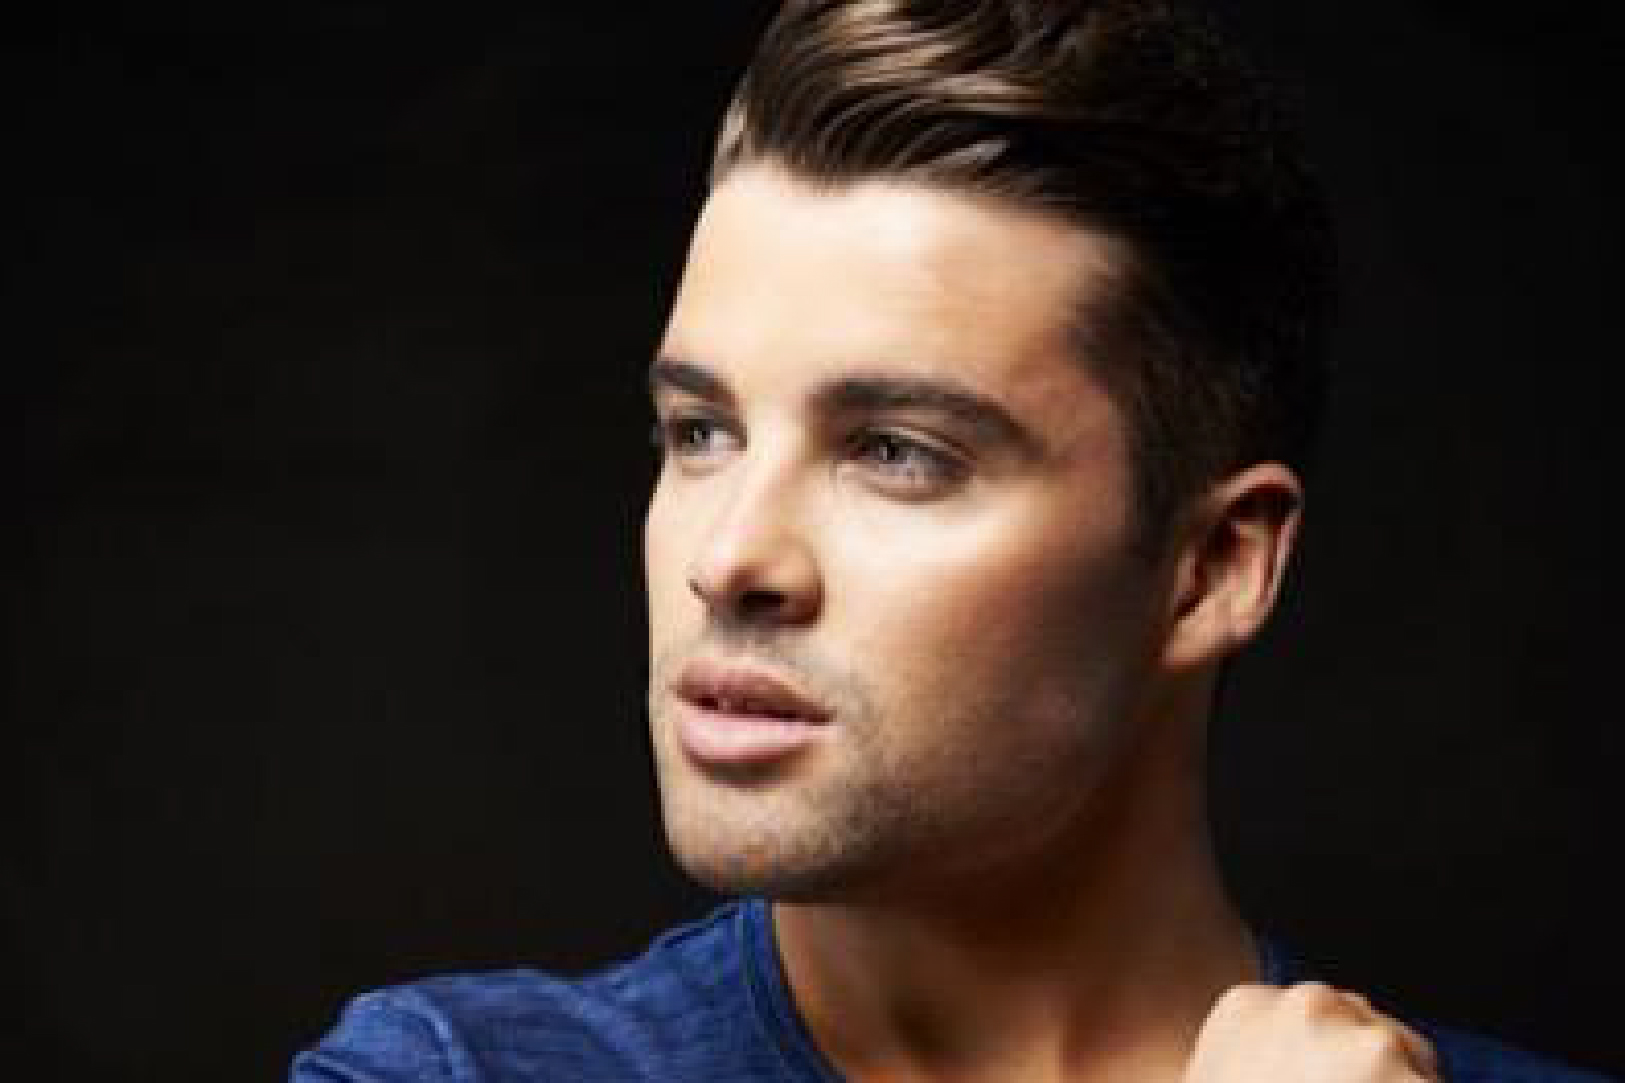 Joe McElderry chats about The Muni, The X Factor and his fans